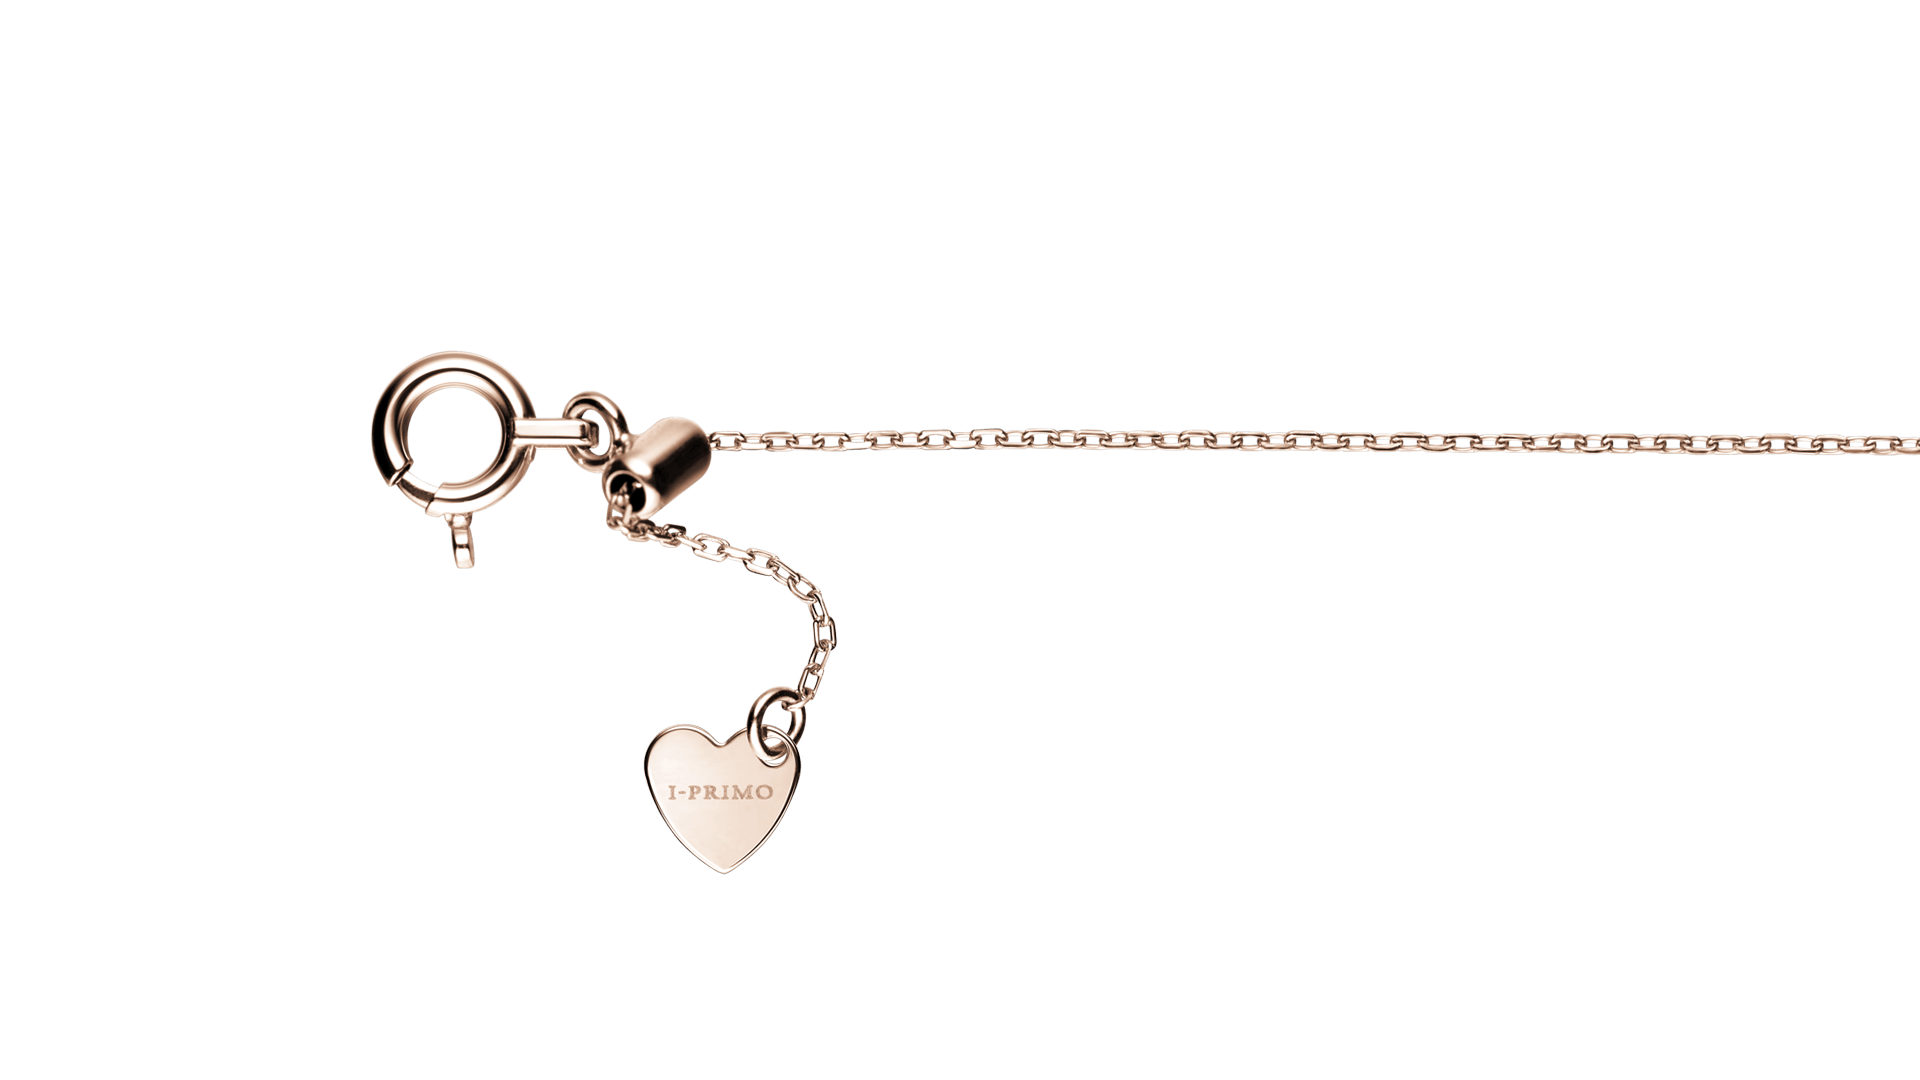 Personal Necklace パーソナルネックレス | アニバーサリージュエリーサムネイル 4